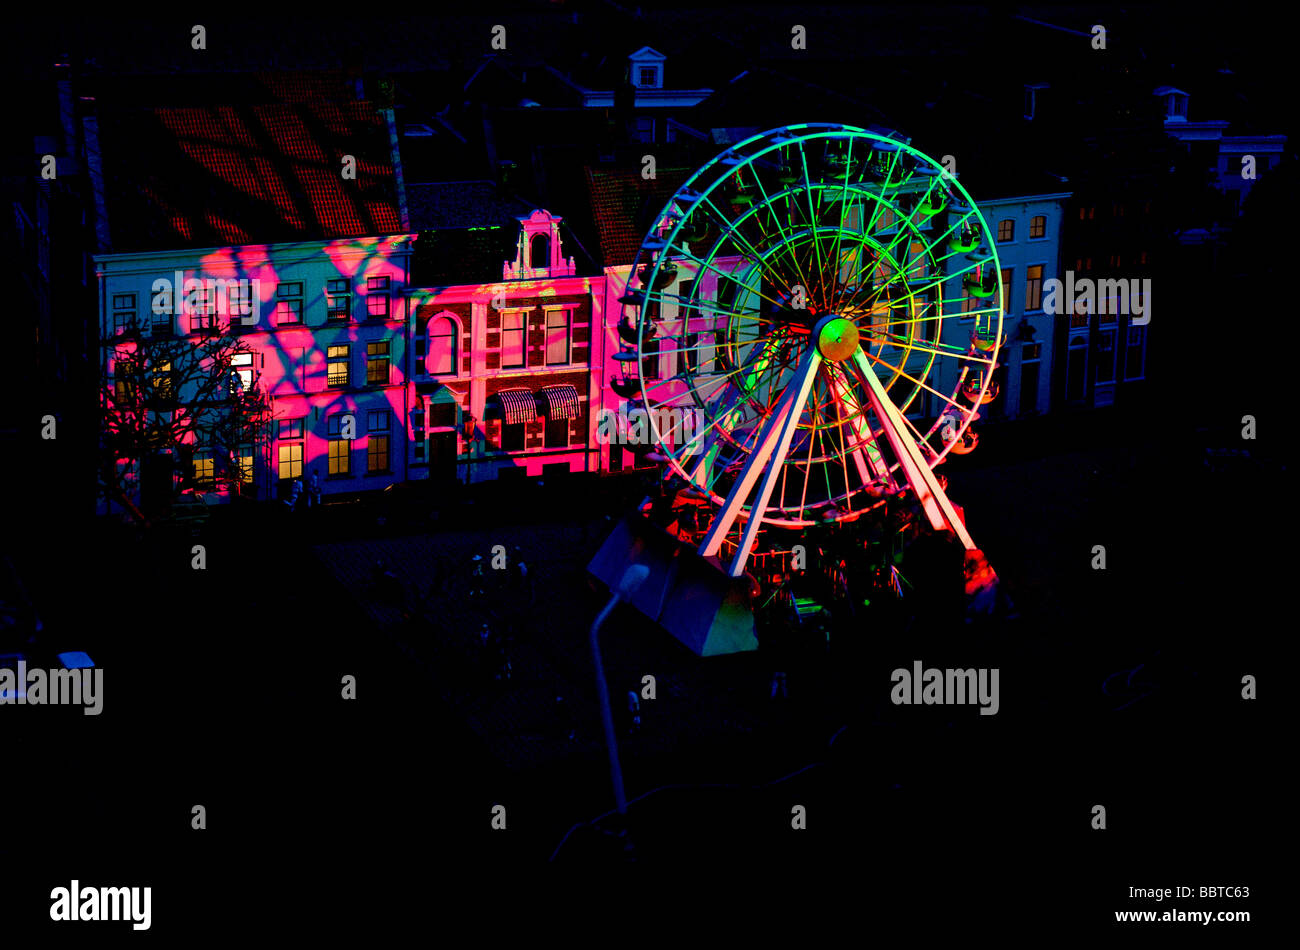 Fairground as replicated in Madurodam - Stock Image